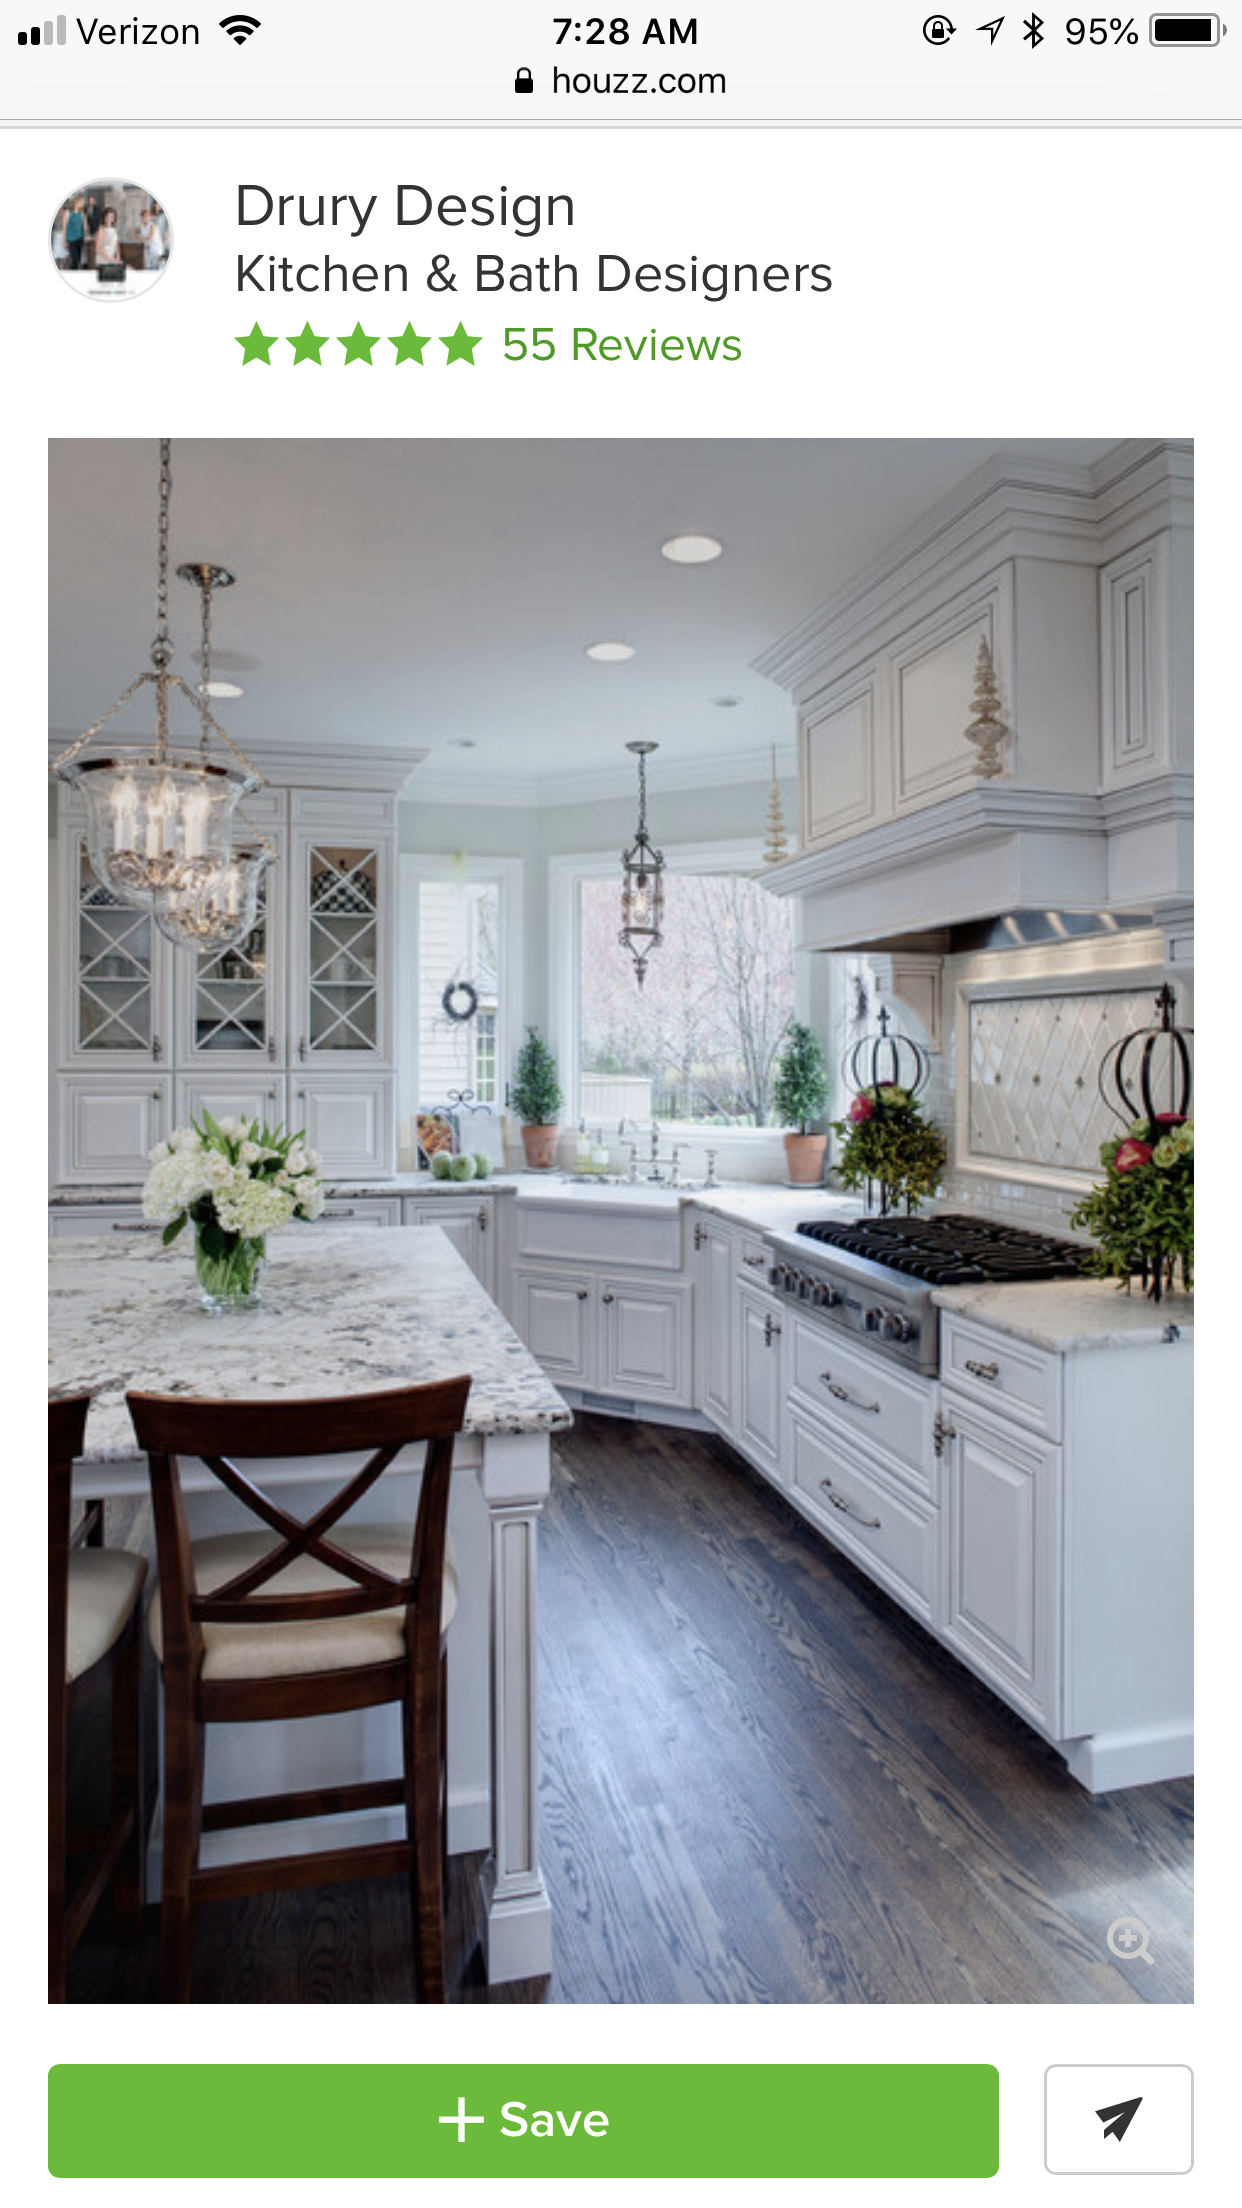 Pin by Jenna Gerstein on For the Home | Pinterest | Kitchens